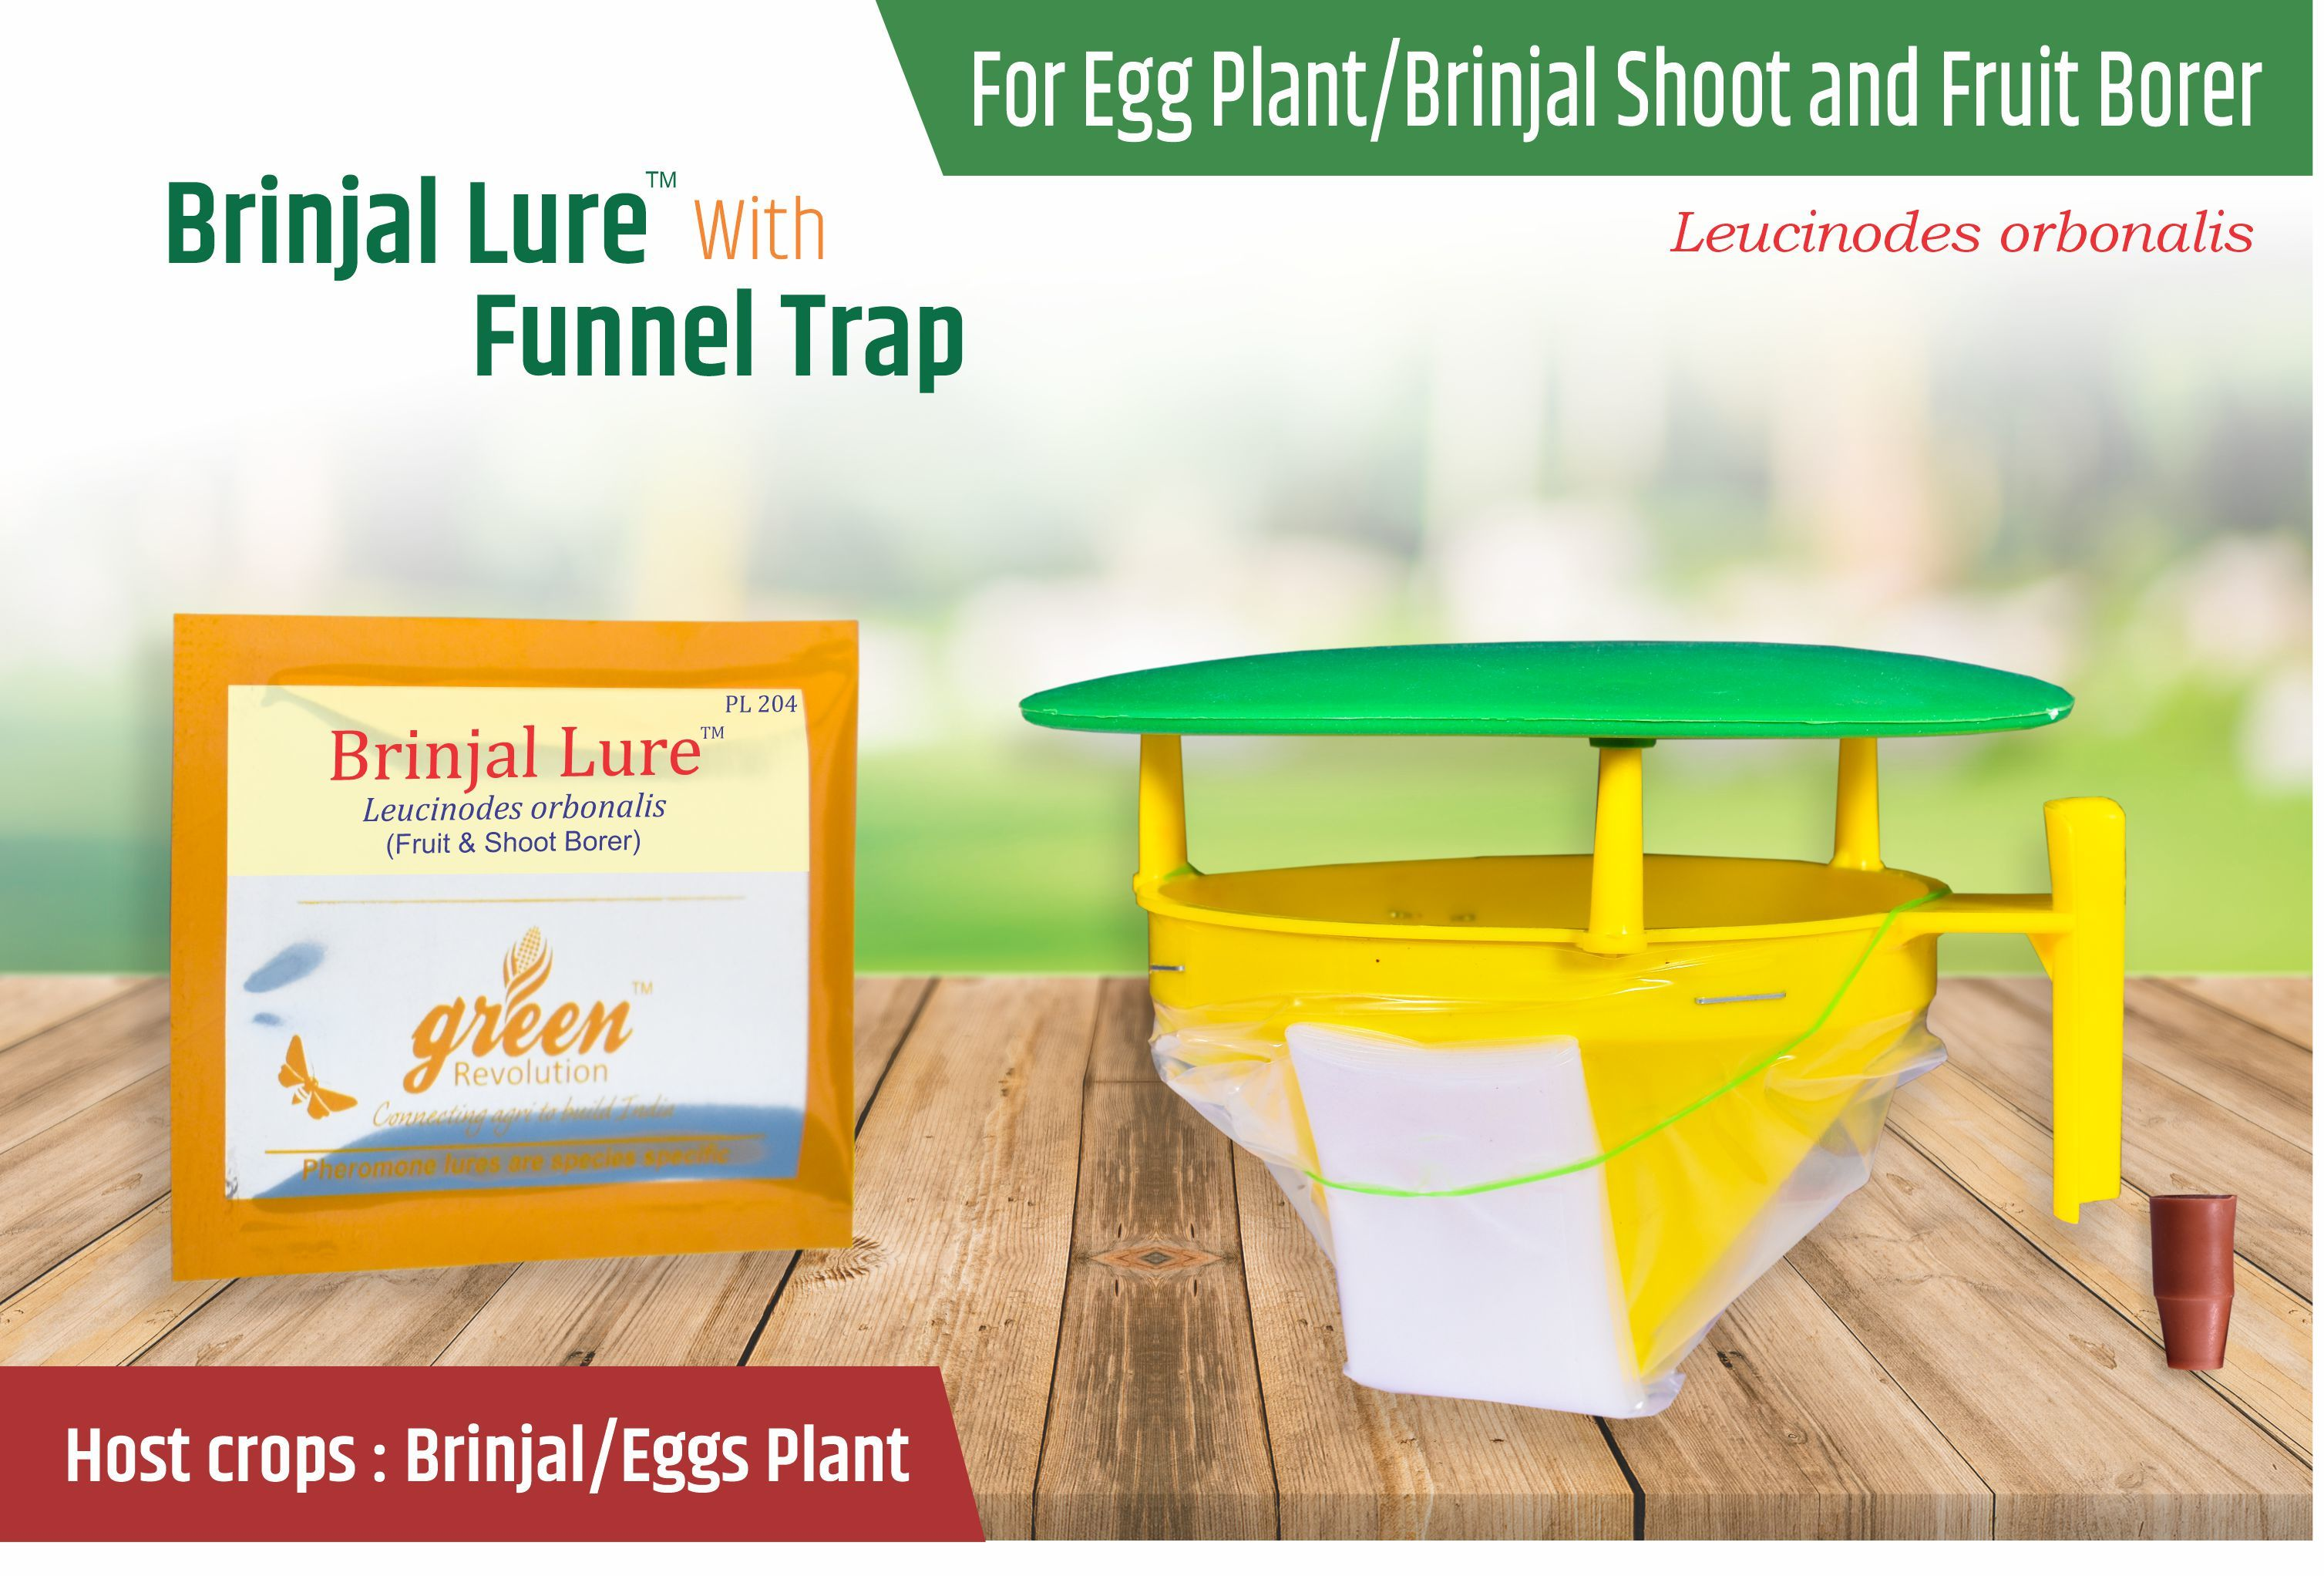 Brinjal Fruit and Shoot Borer Pheromone Trap - Leucinodes Orbonalis Pheromone Lure